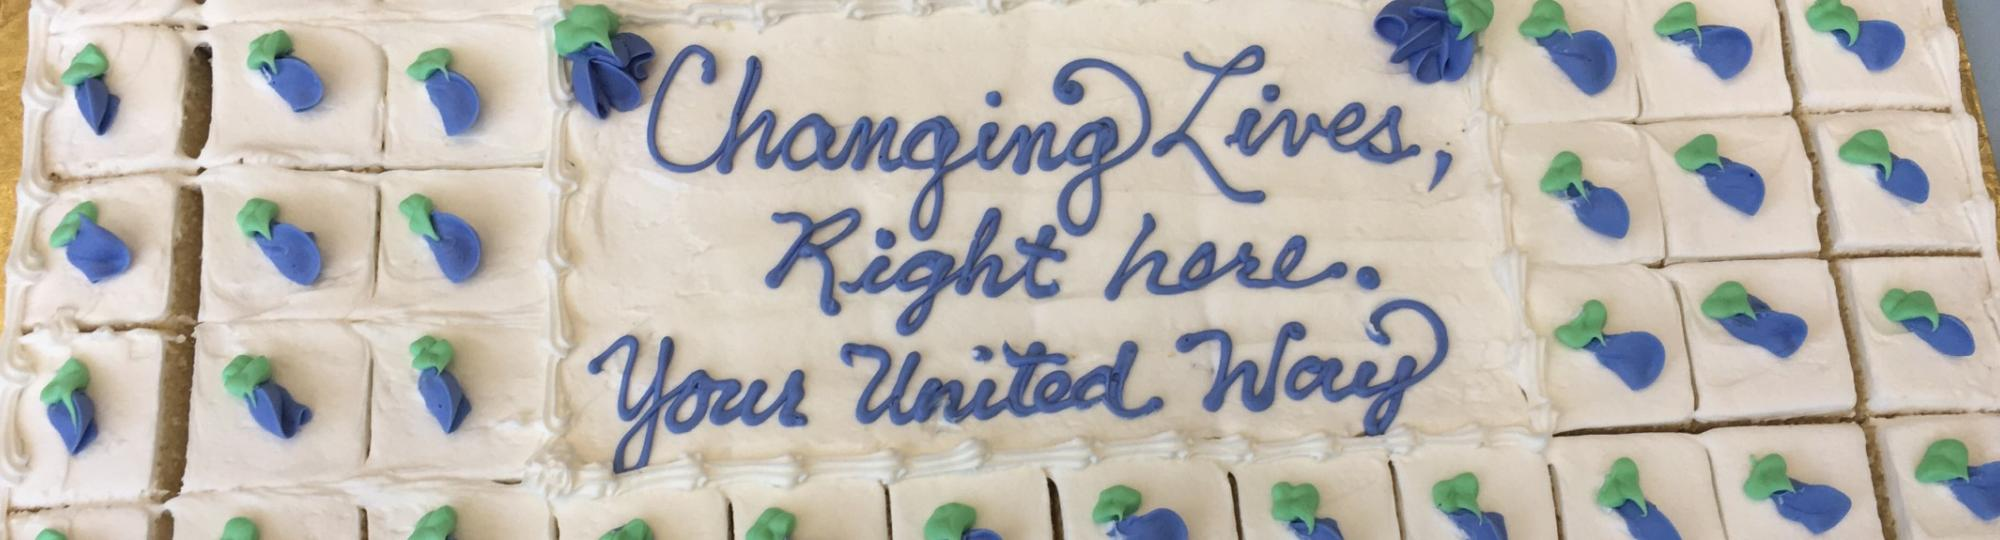 Cake with writing that says Changing Lives, Right Here. Your United Way.